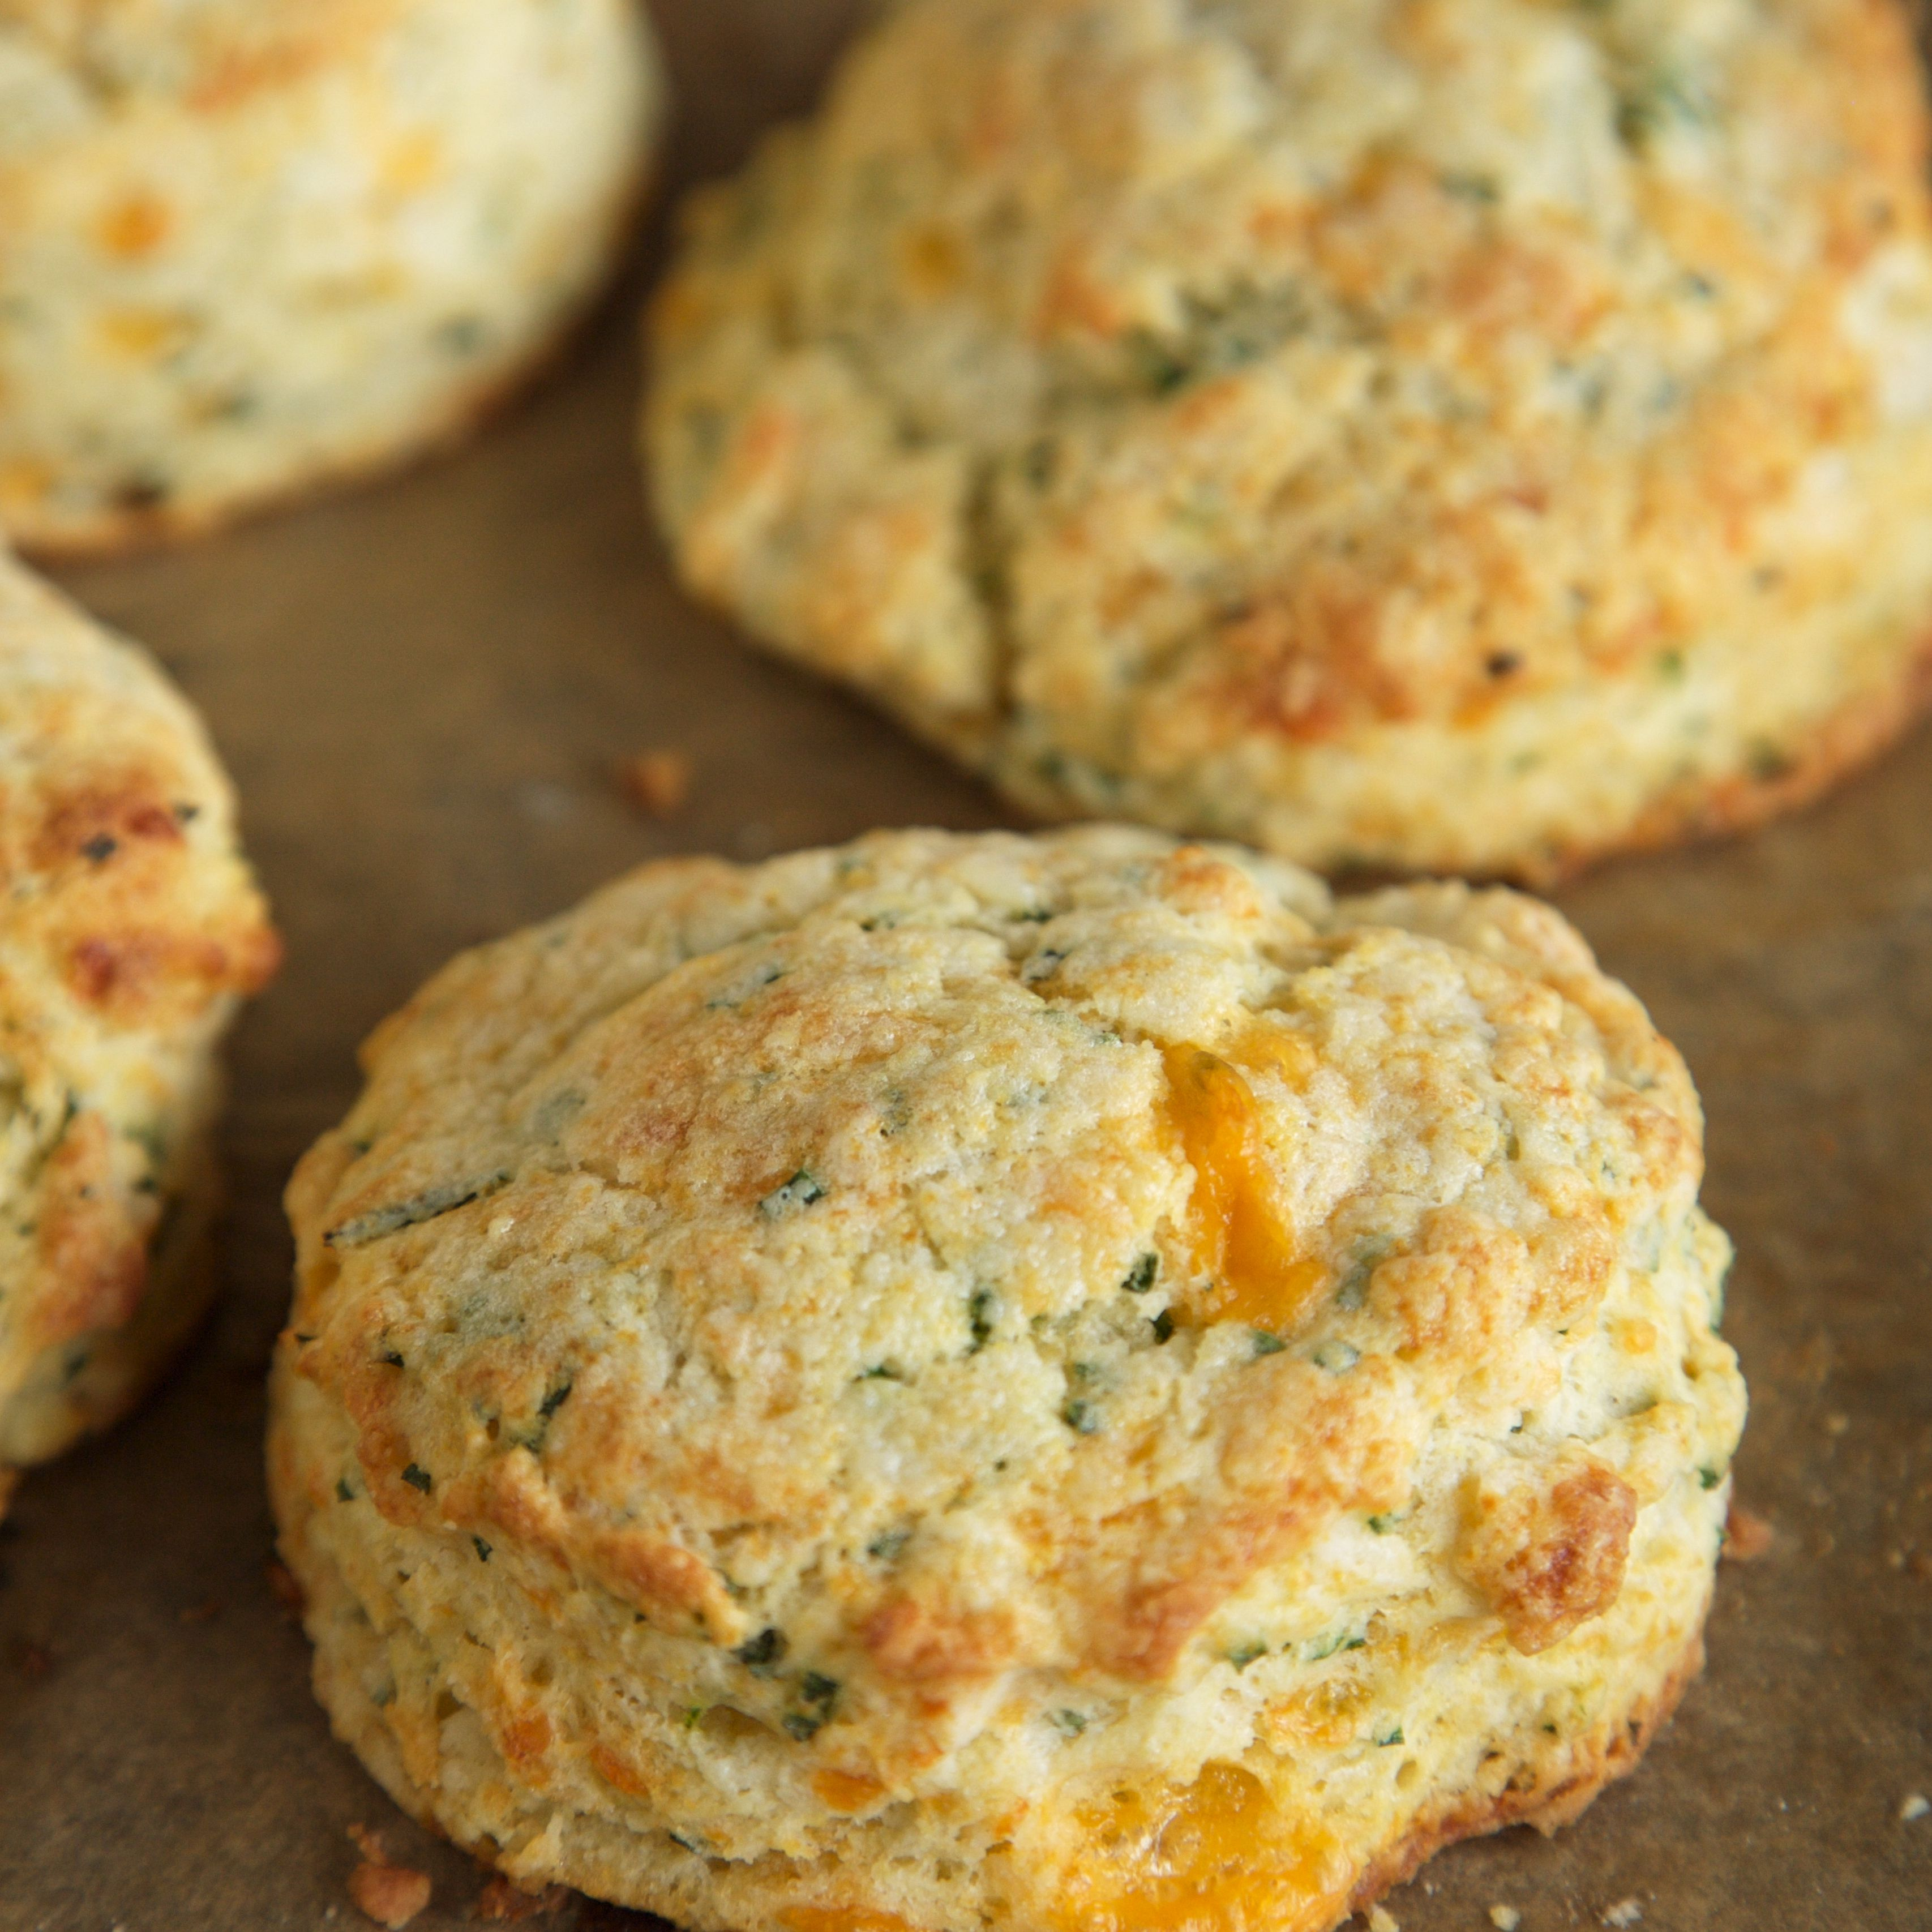 Paleo Biscuits With Almond Flour and Honey